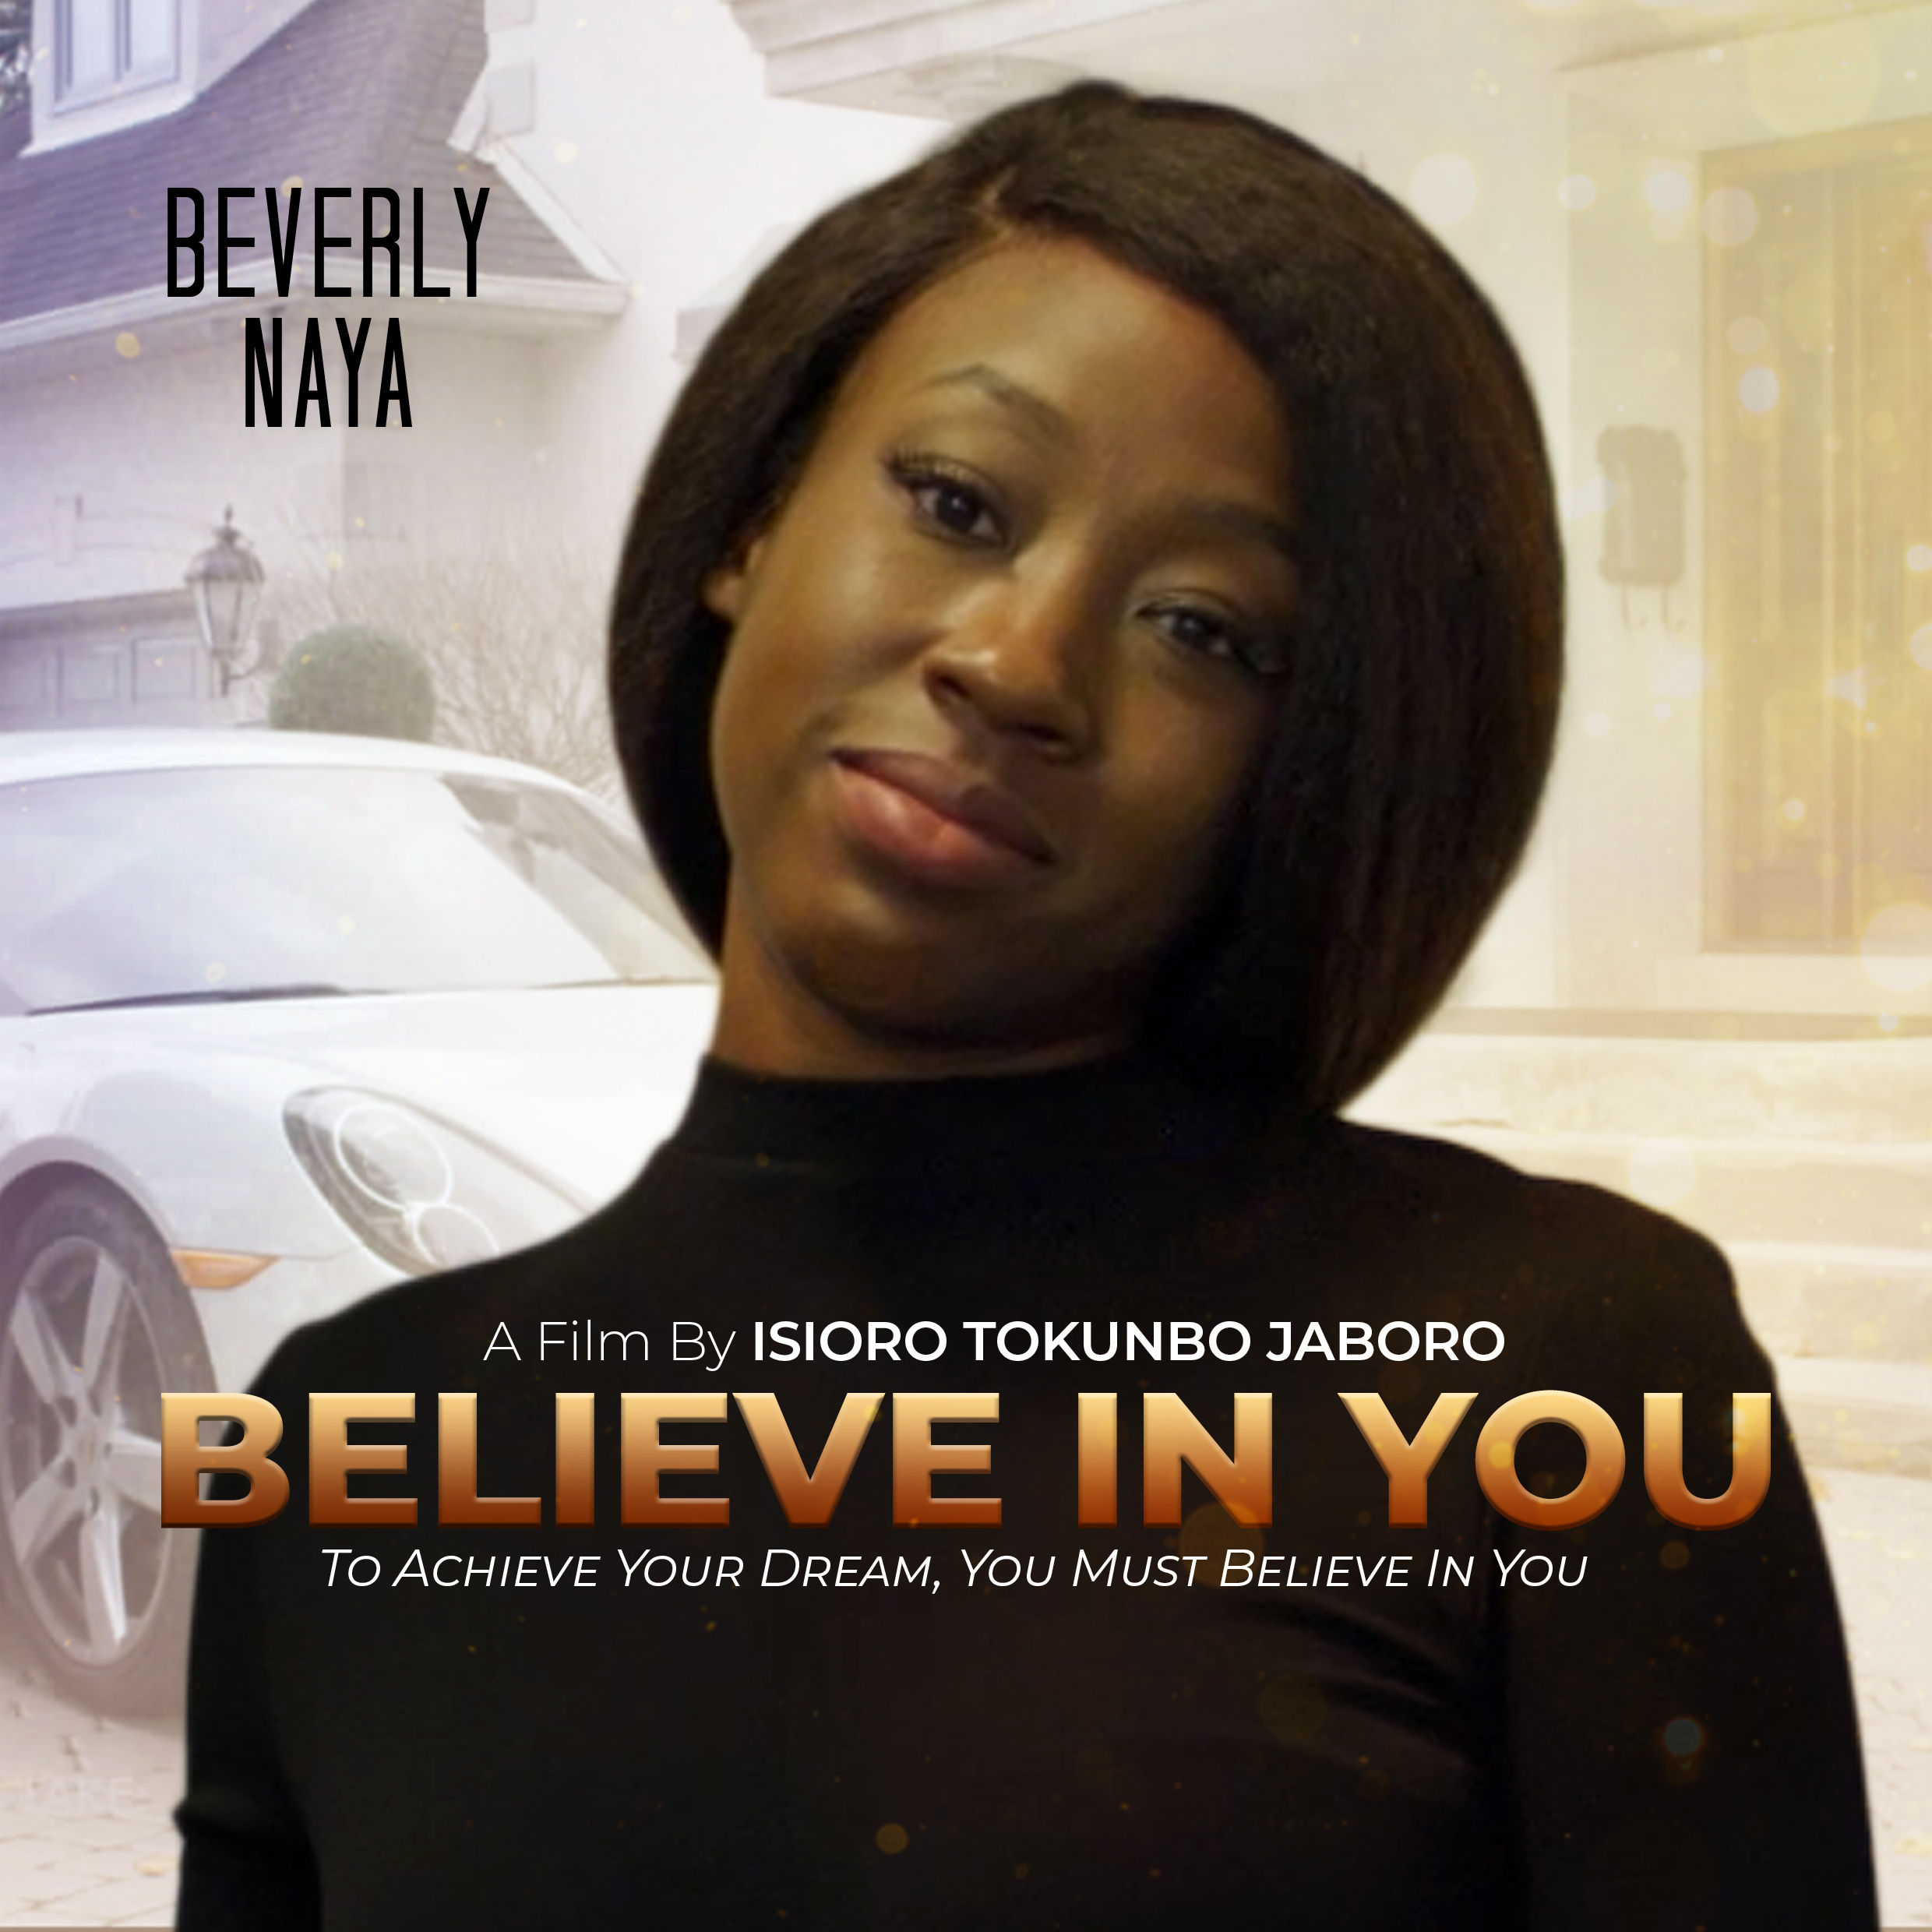 BEVERLY NAYA Stand Alone